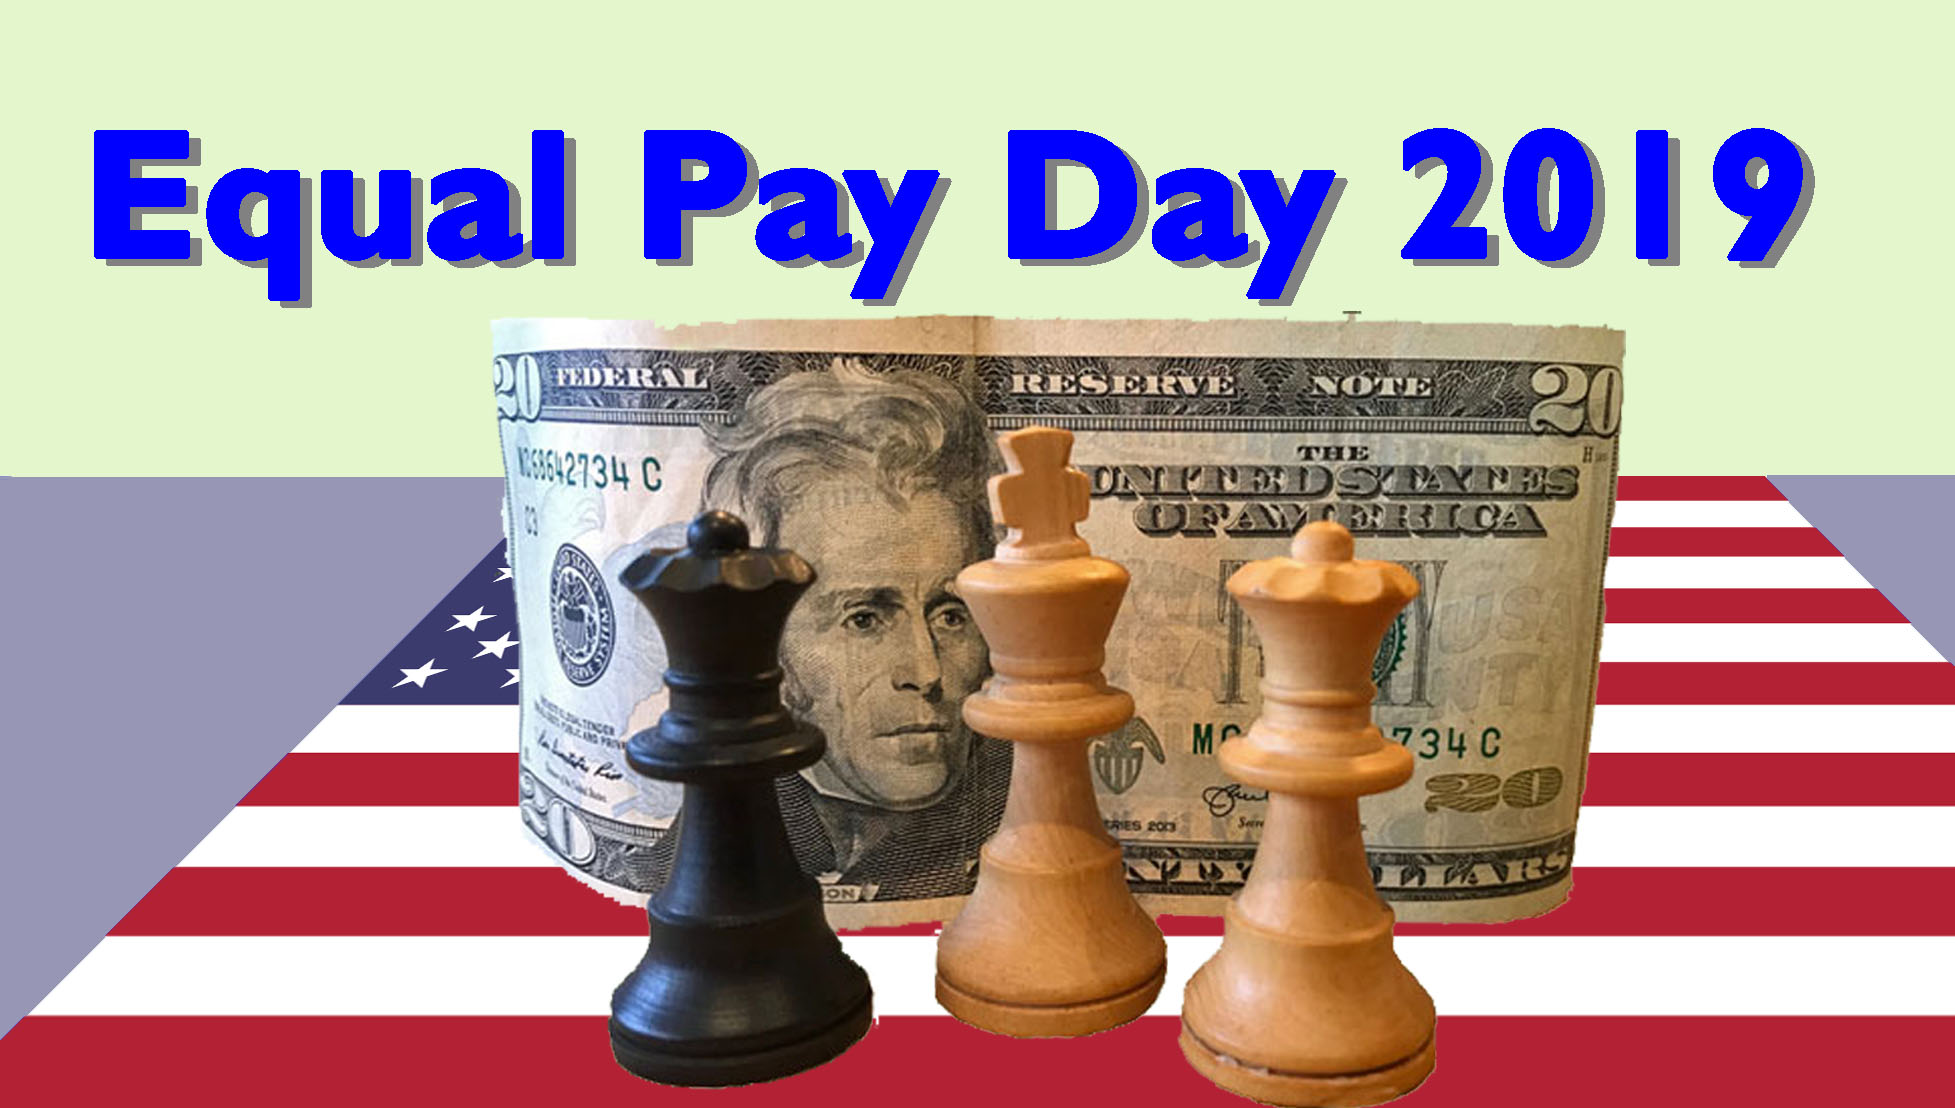 On Equal Pay Day: Reflection on the gender pay gap